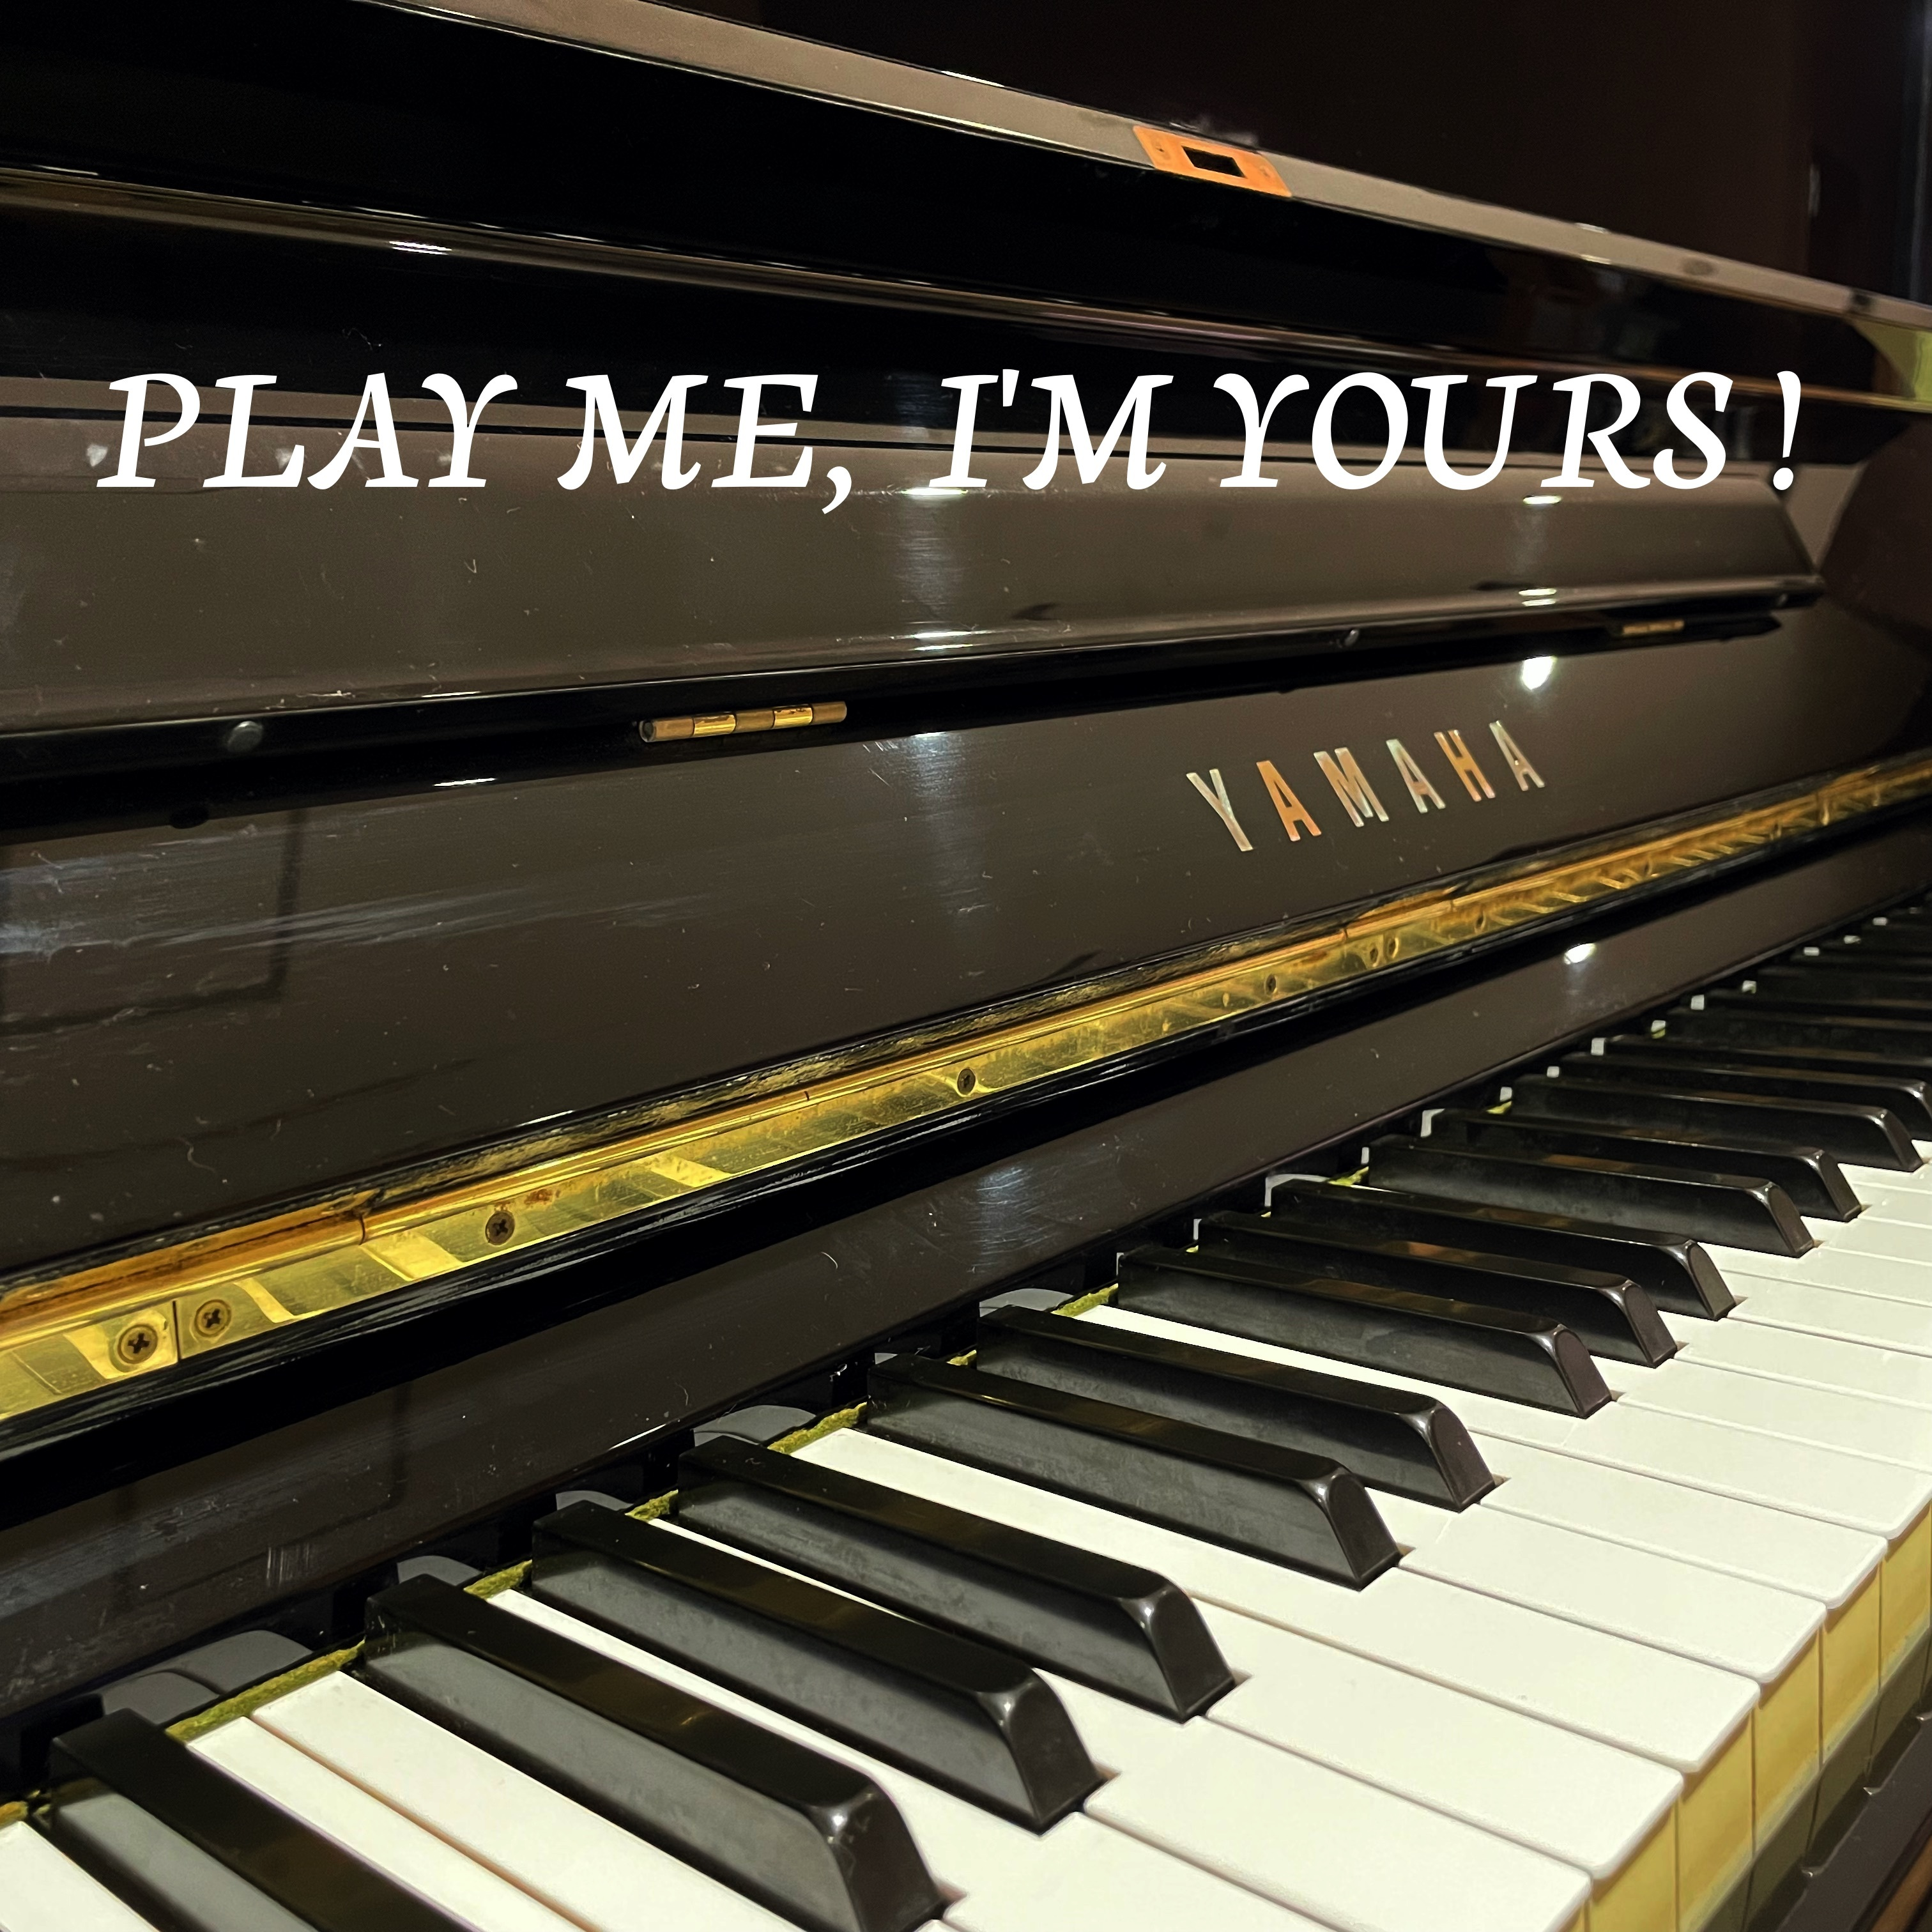 PLAY ME, I'M YOURS!